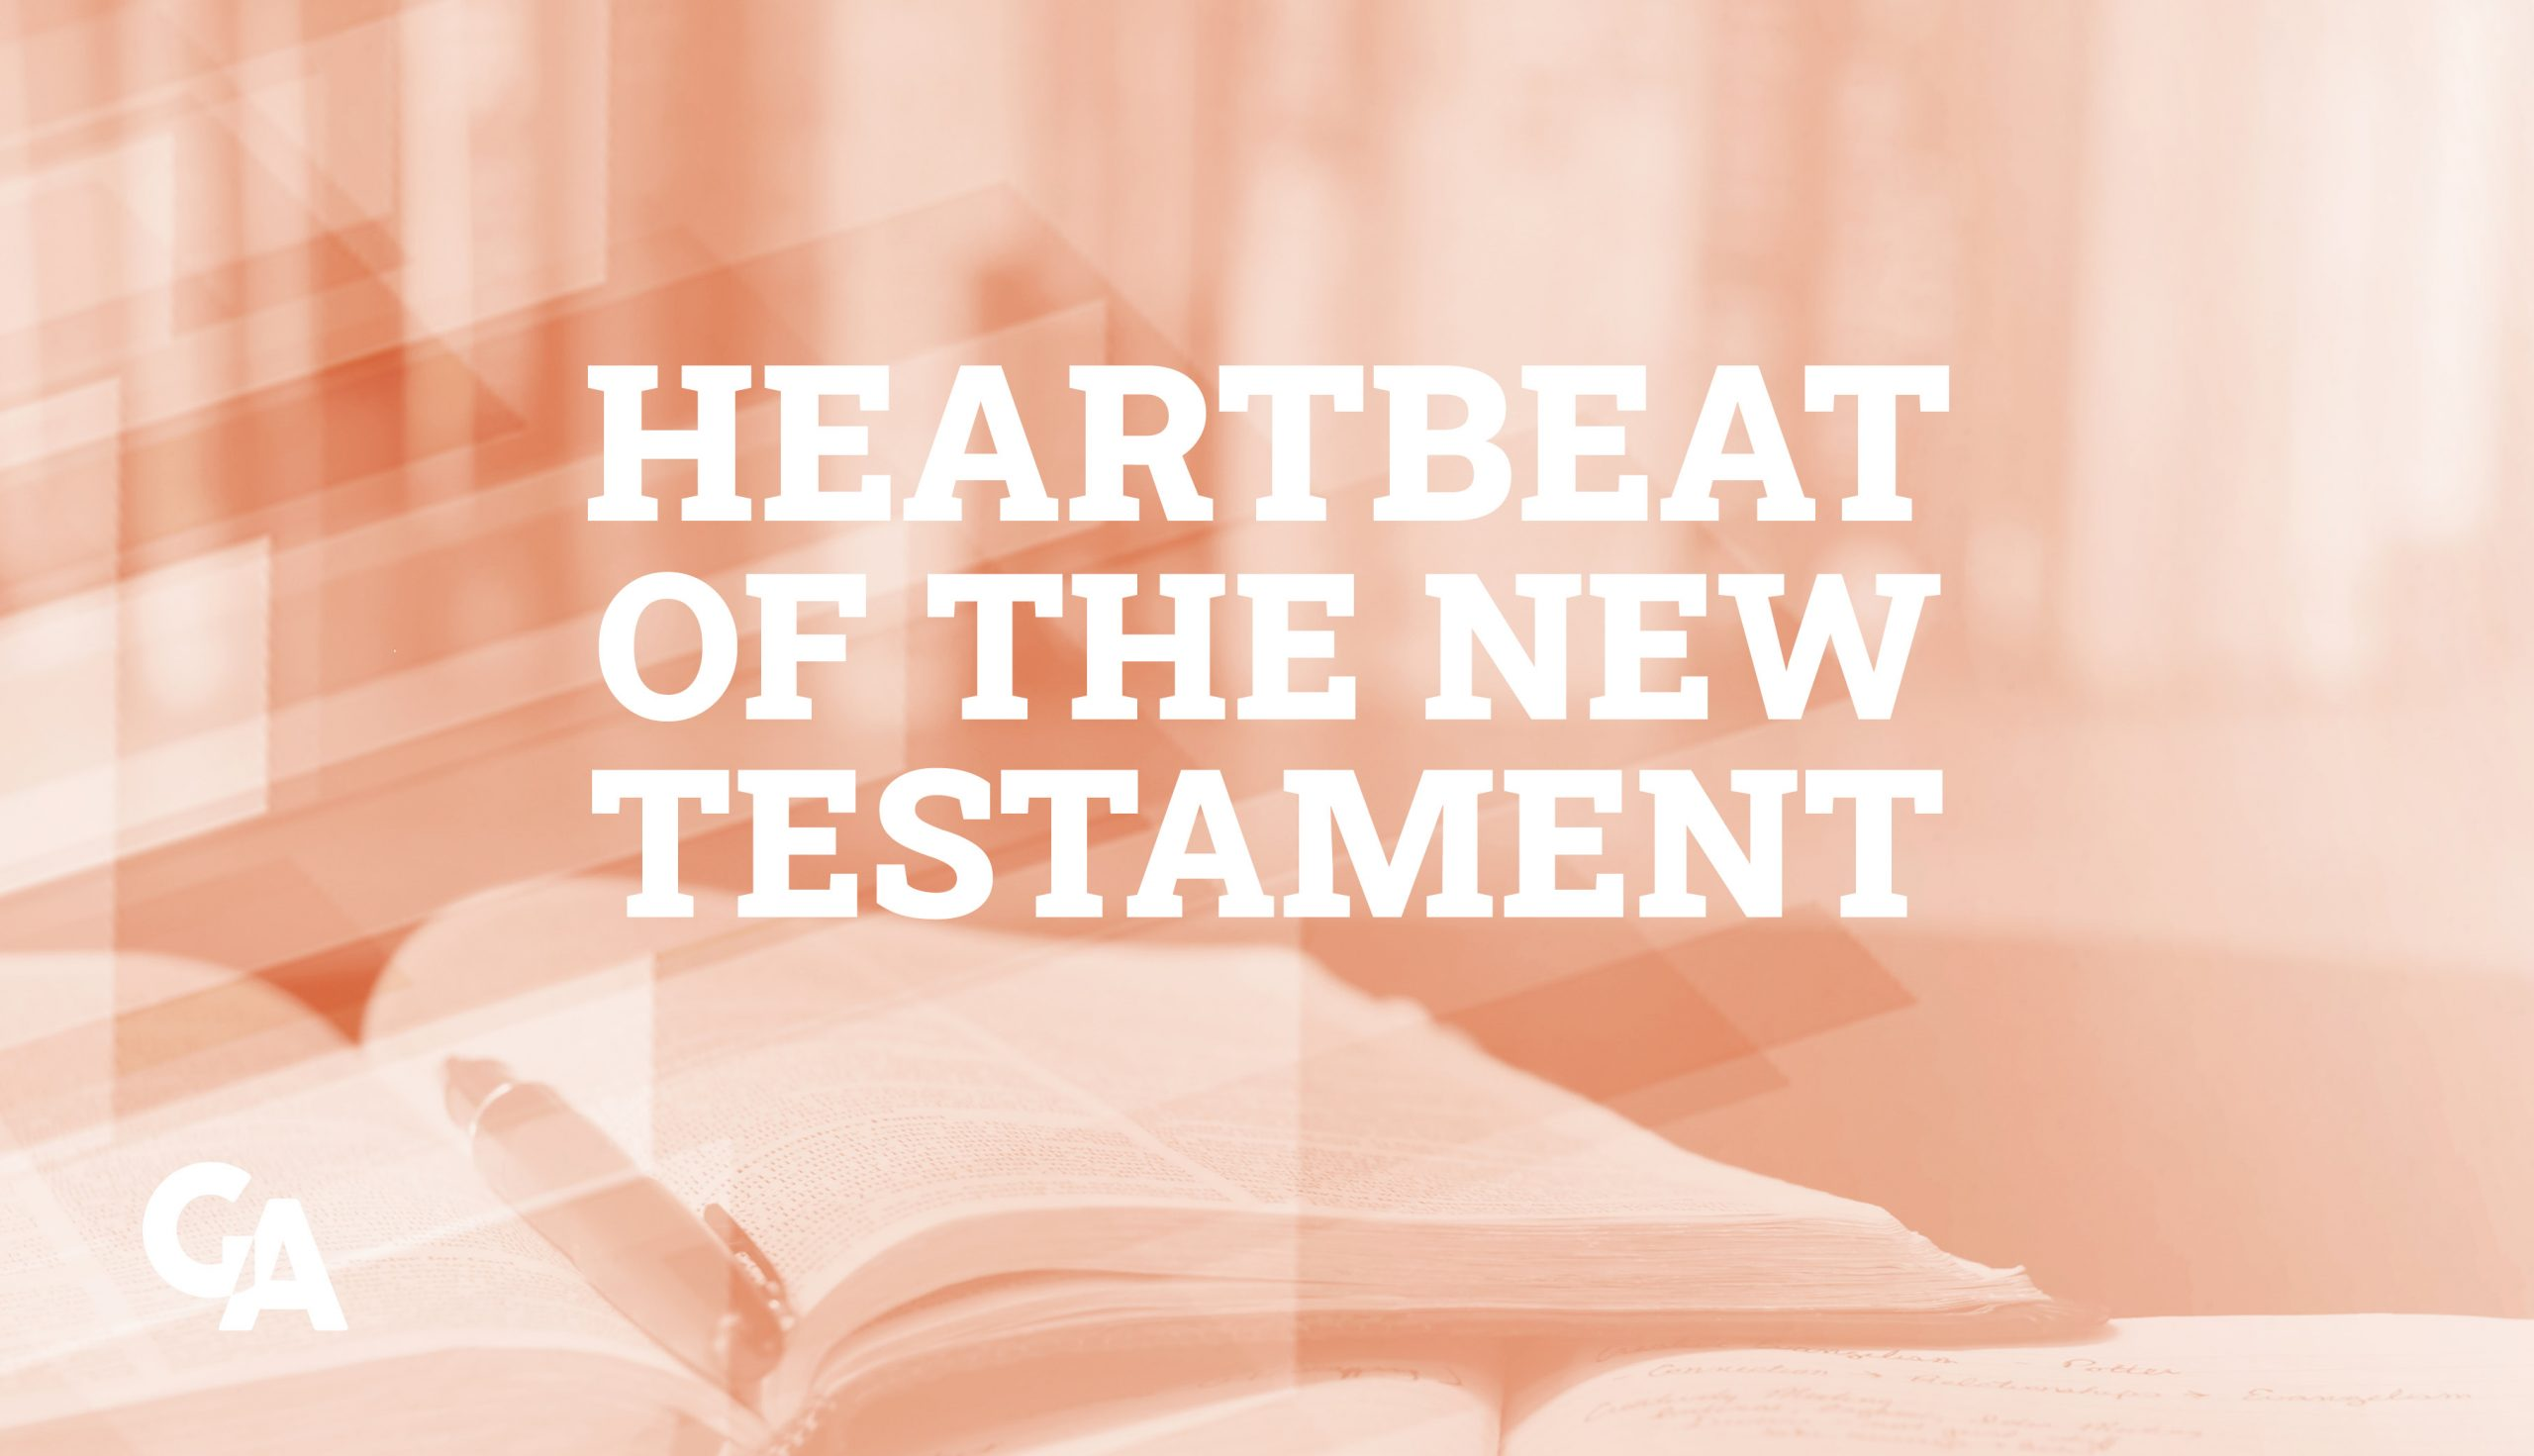 Heartbeat of the New Testament